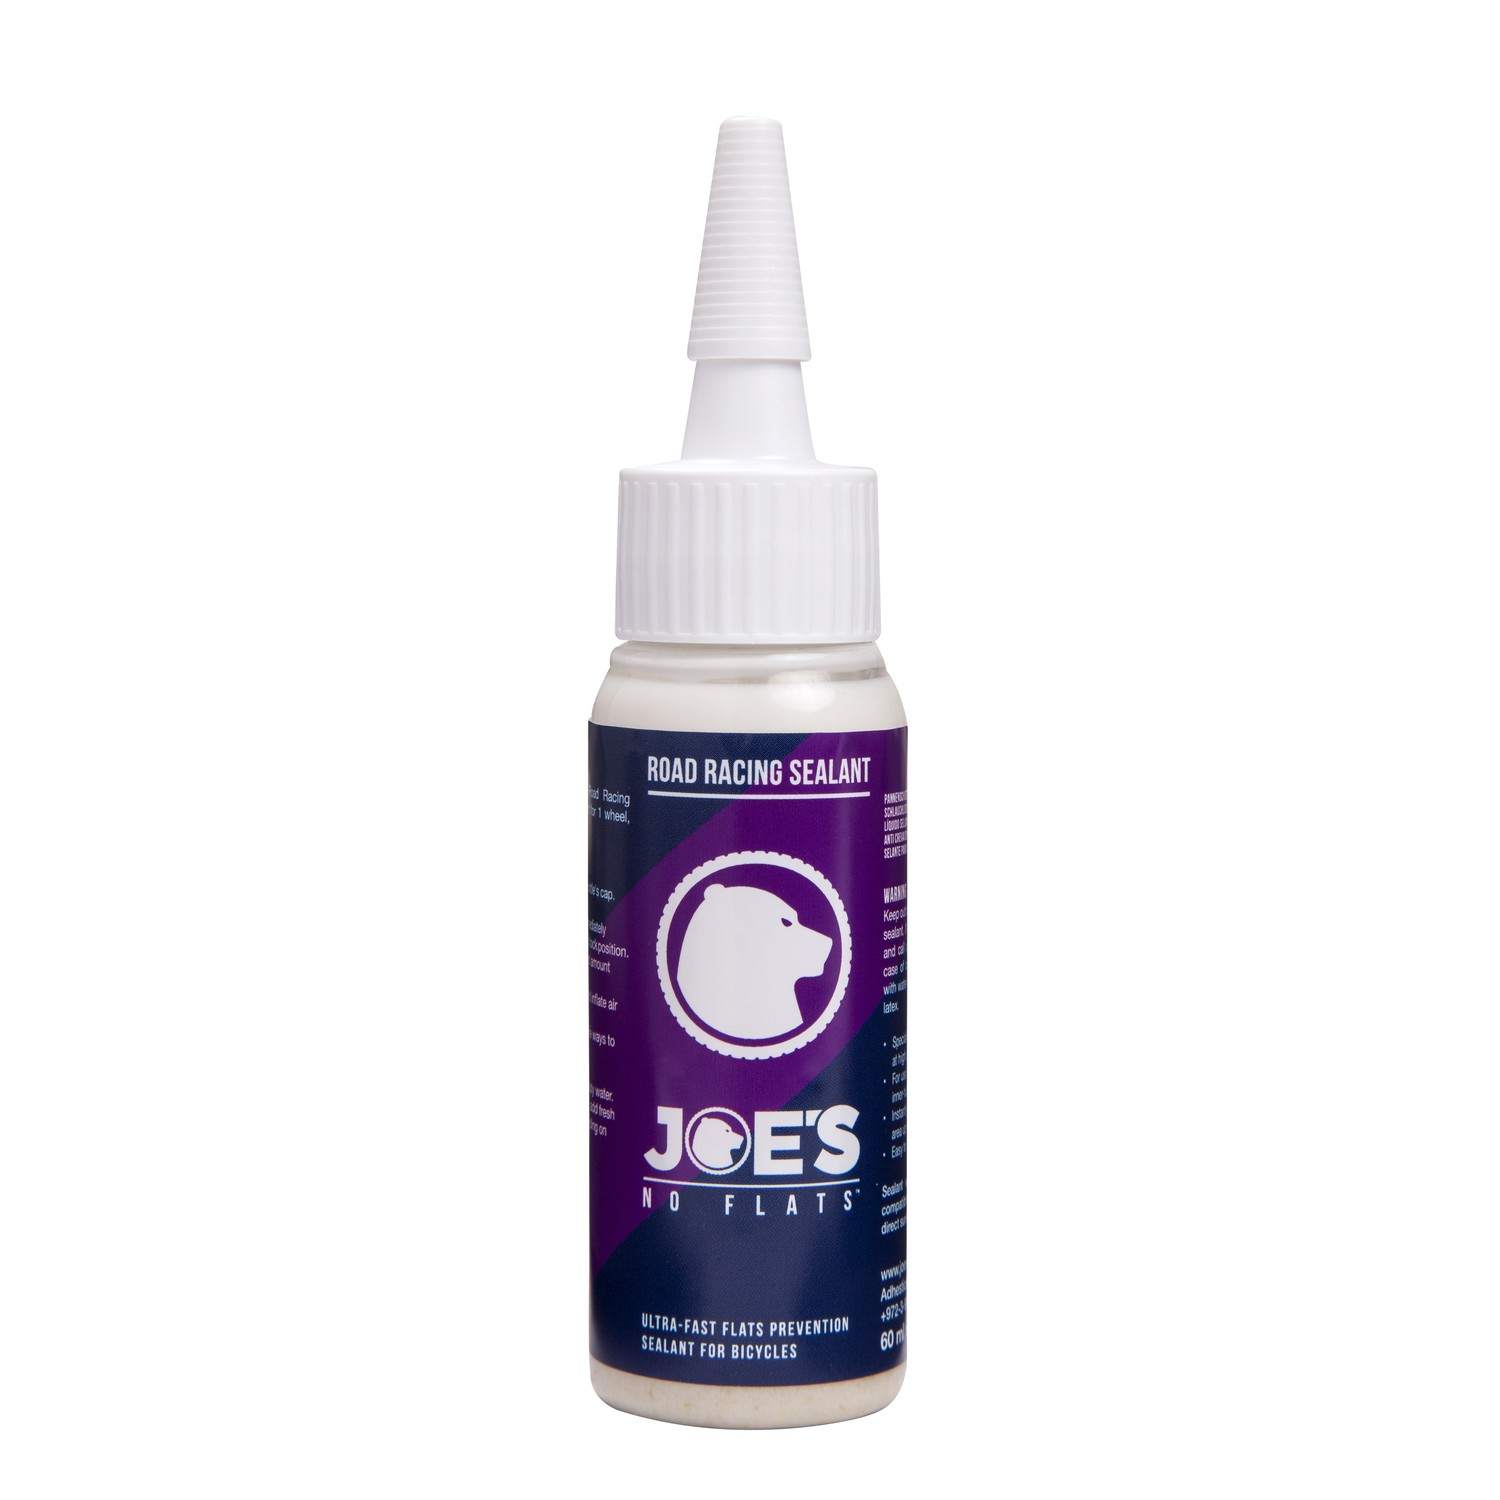 JOE'S NOFLAT | Road Racing Sealant – 60 ml / 2 oz